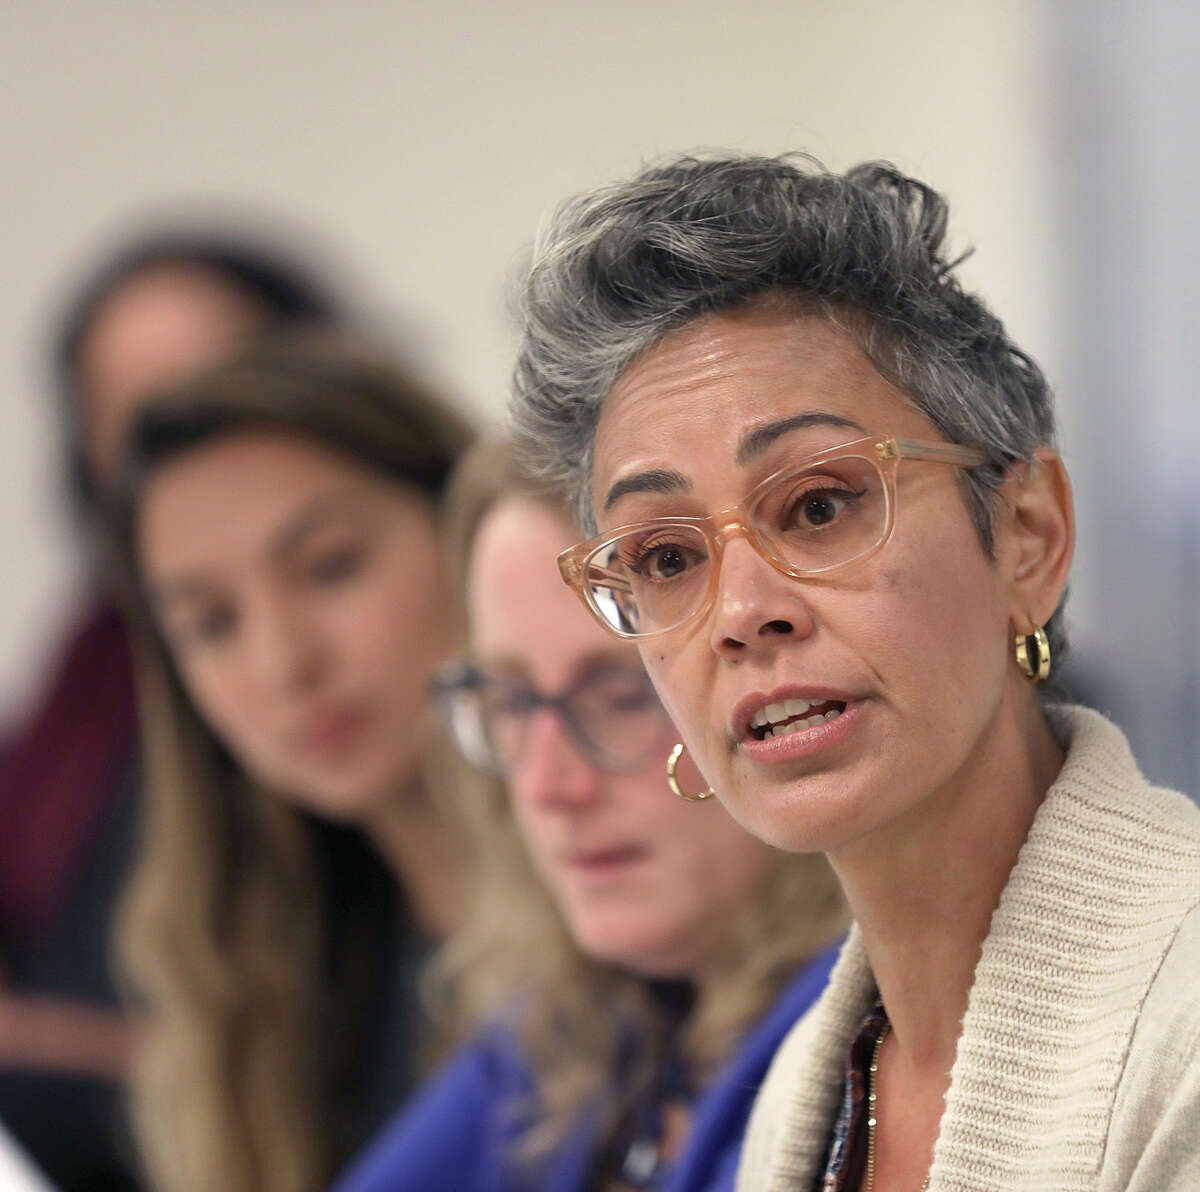 Alison Collins, right, is seen during an editorial board meeting Sept. 26, 2018, in San Francisco.